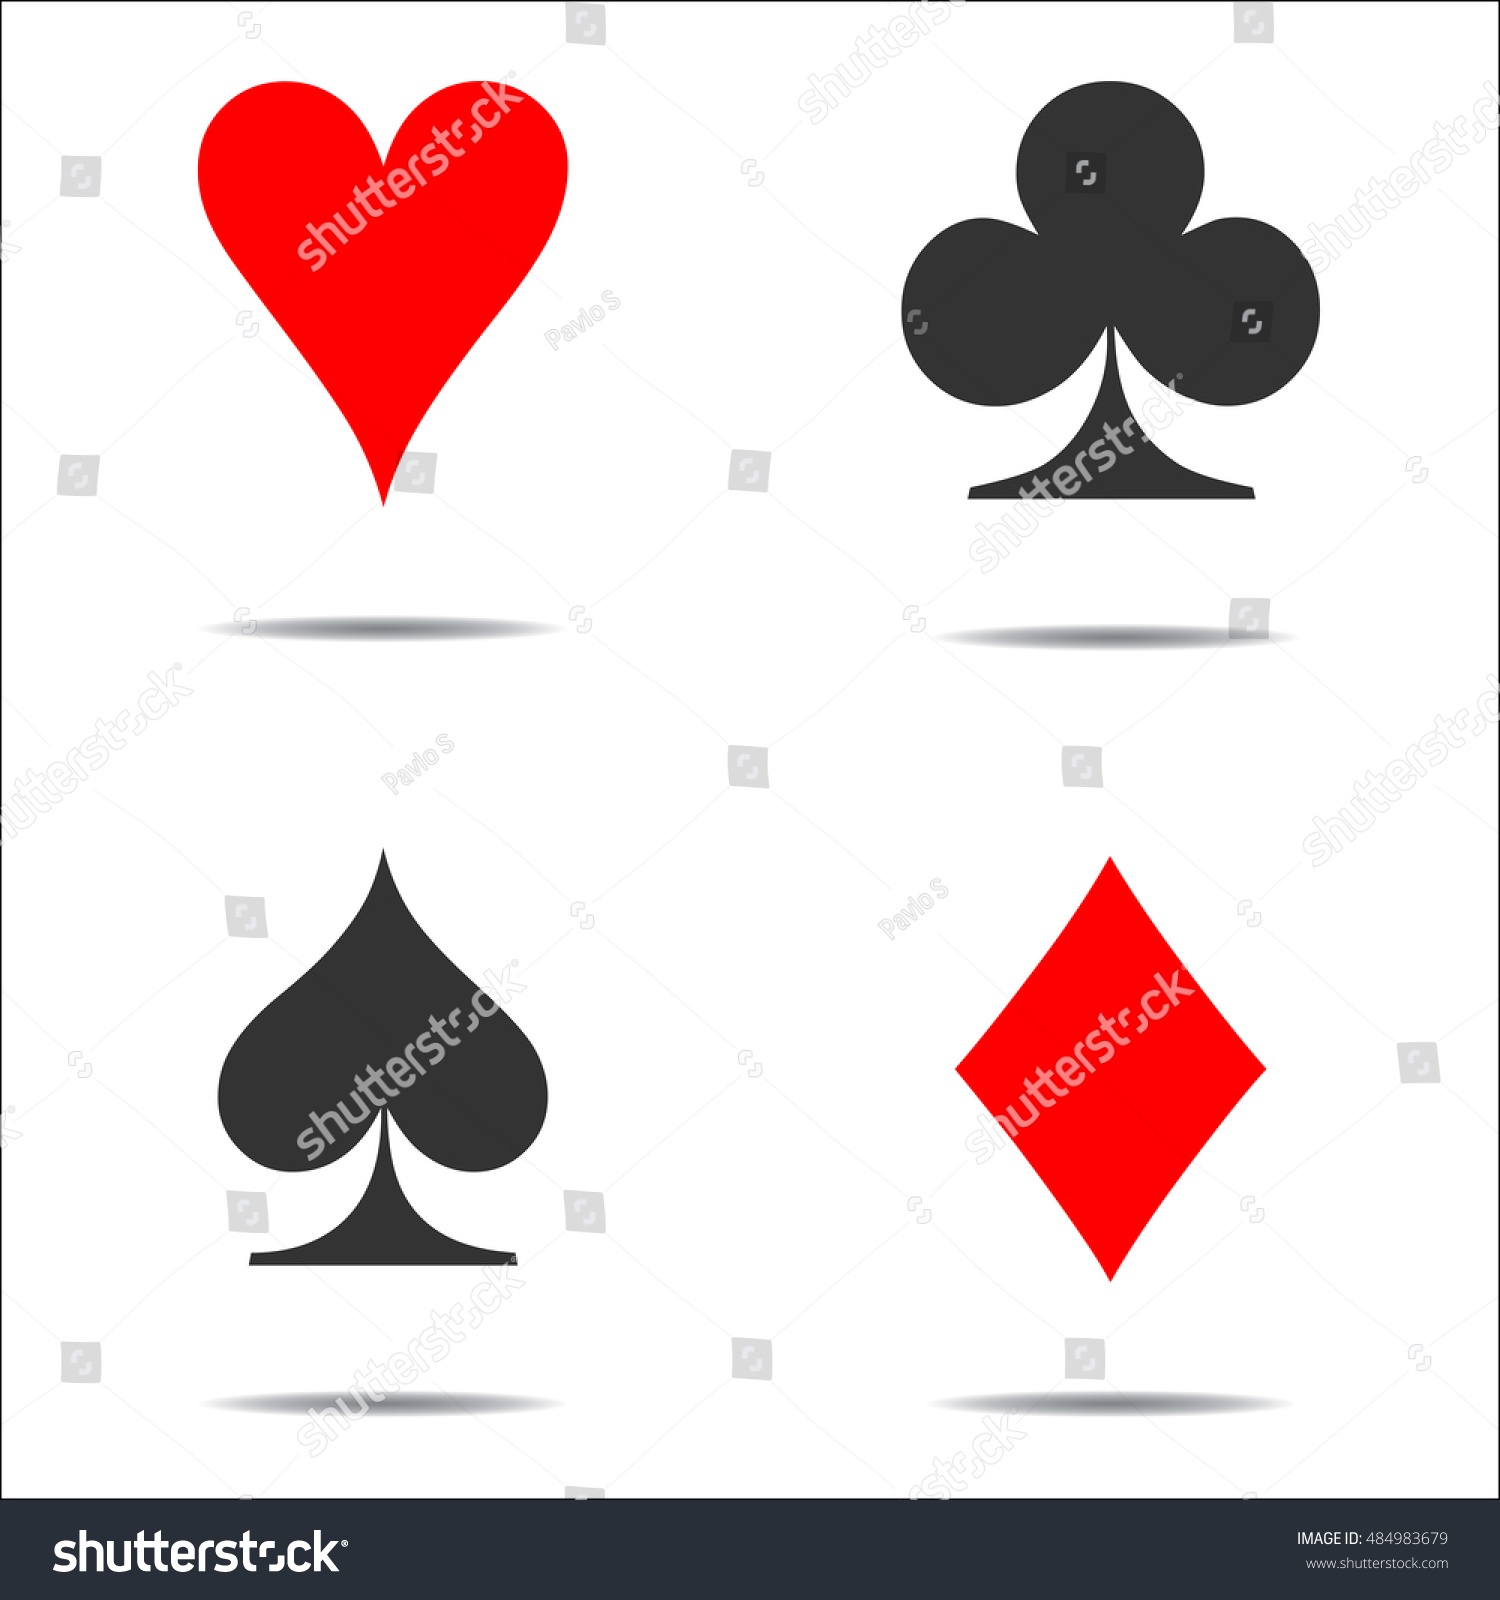 Colored card suit icon vector playing stock vector 484983679 colored card suit icon vector playing cards symbols vector set icon symbol suit biocorpaavc